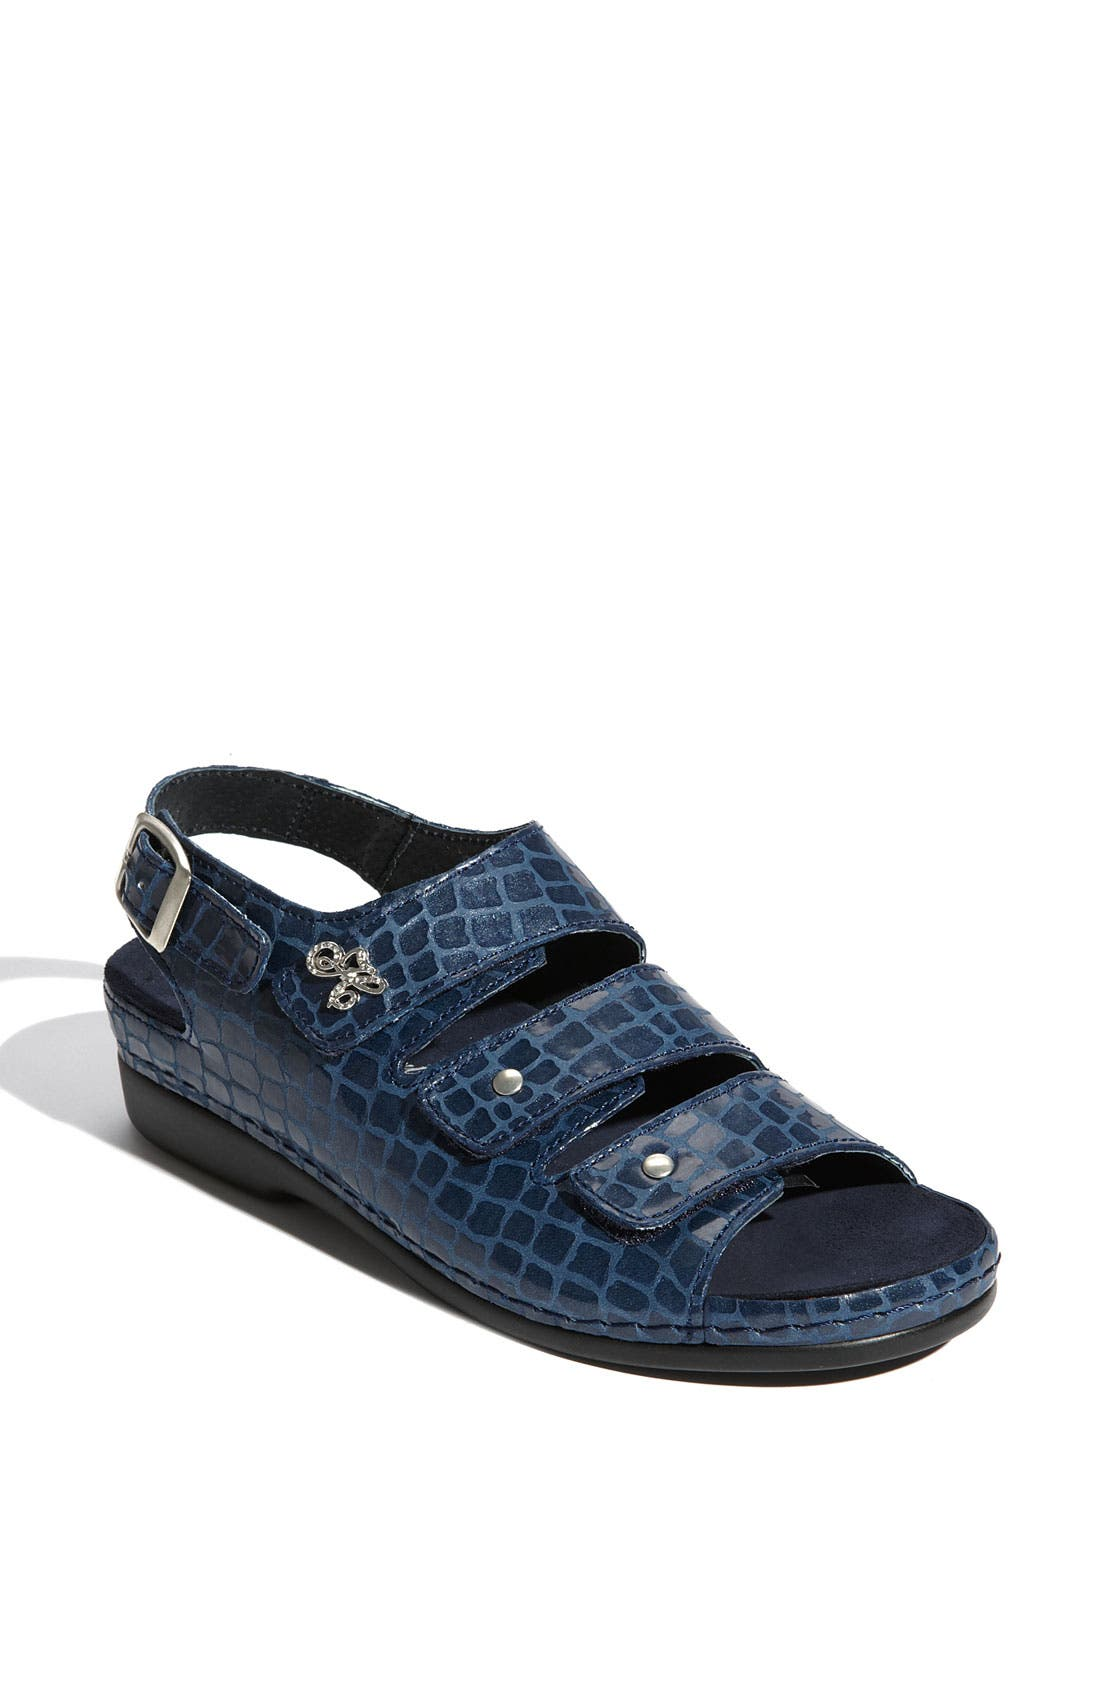 Alternate Image 1 Selected - Helle Comfort® '356-F' Sandal